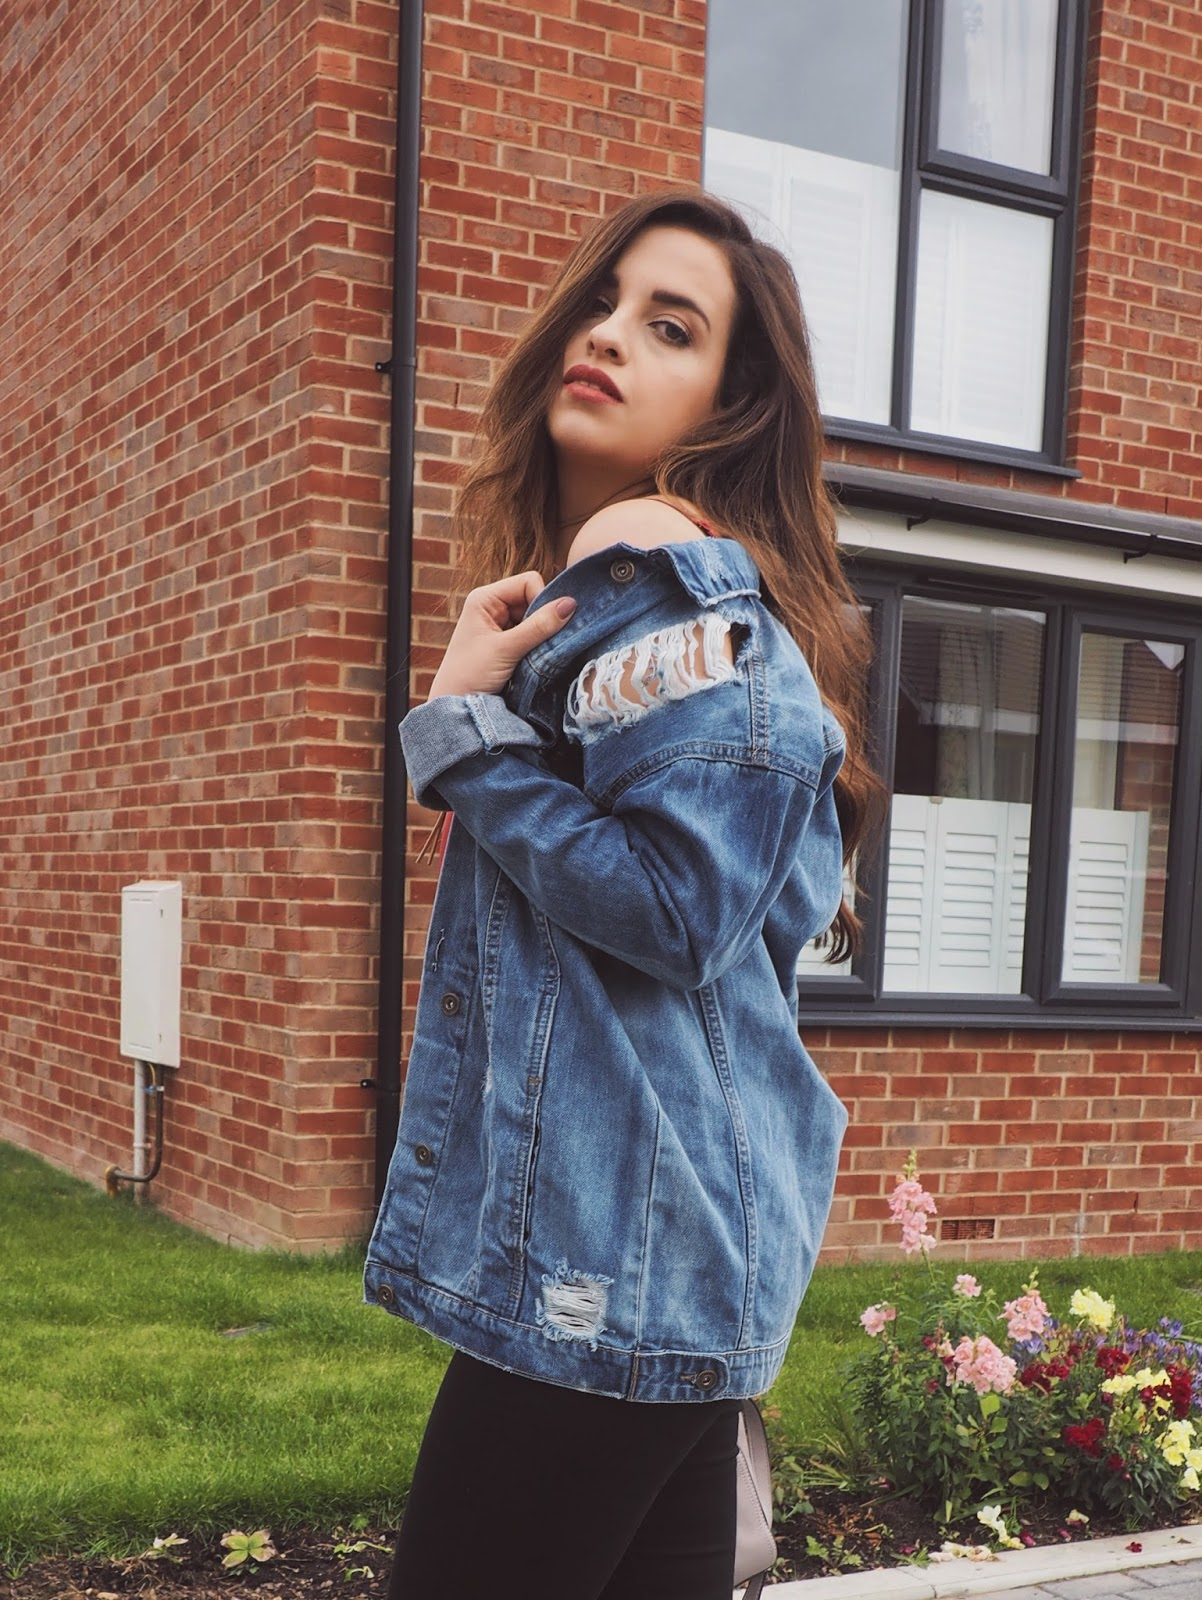 Styling An Oversized Denim Jacket For the Cold Weather Ahead